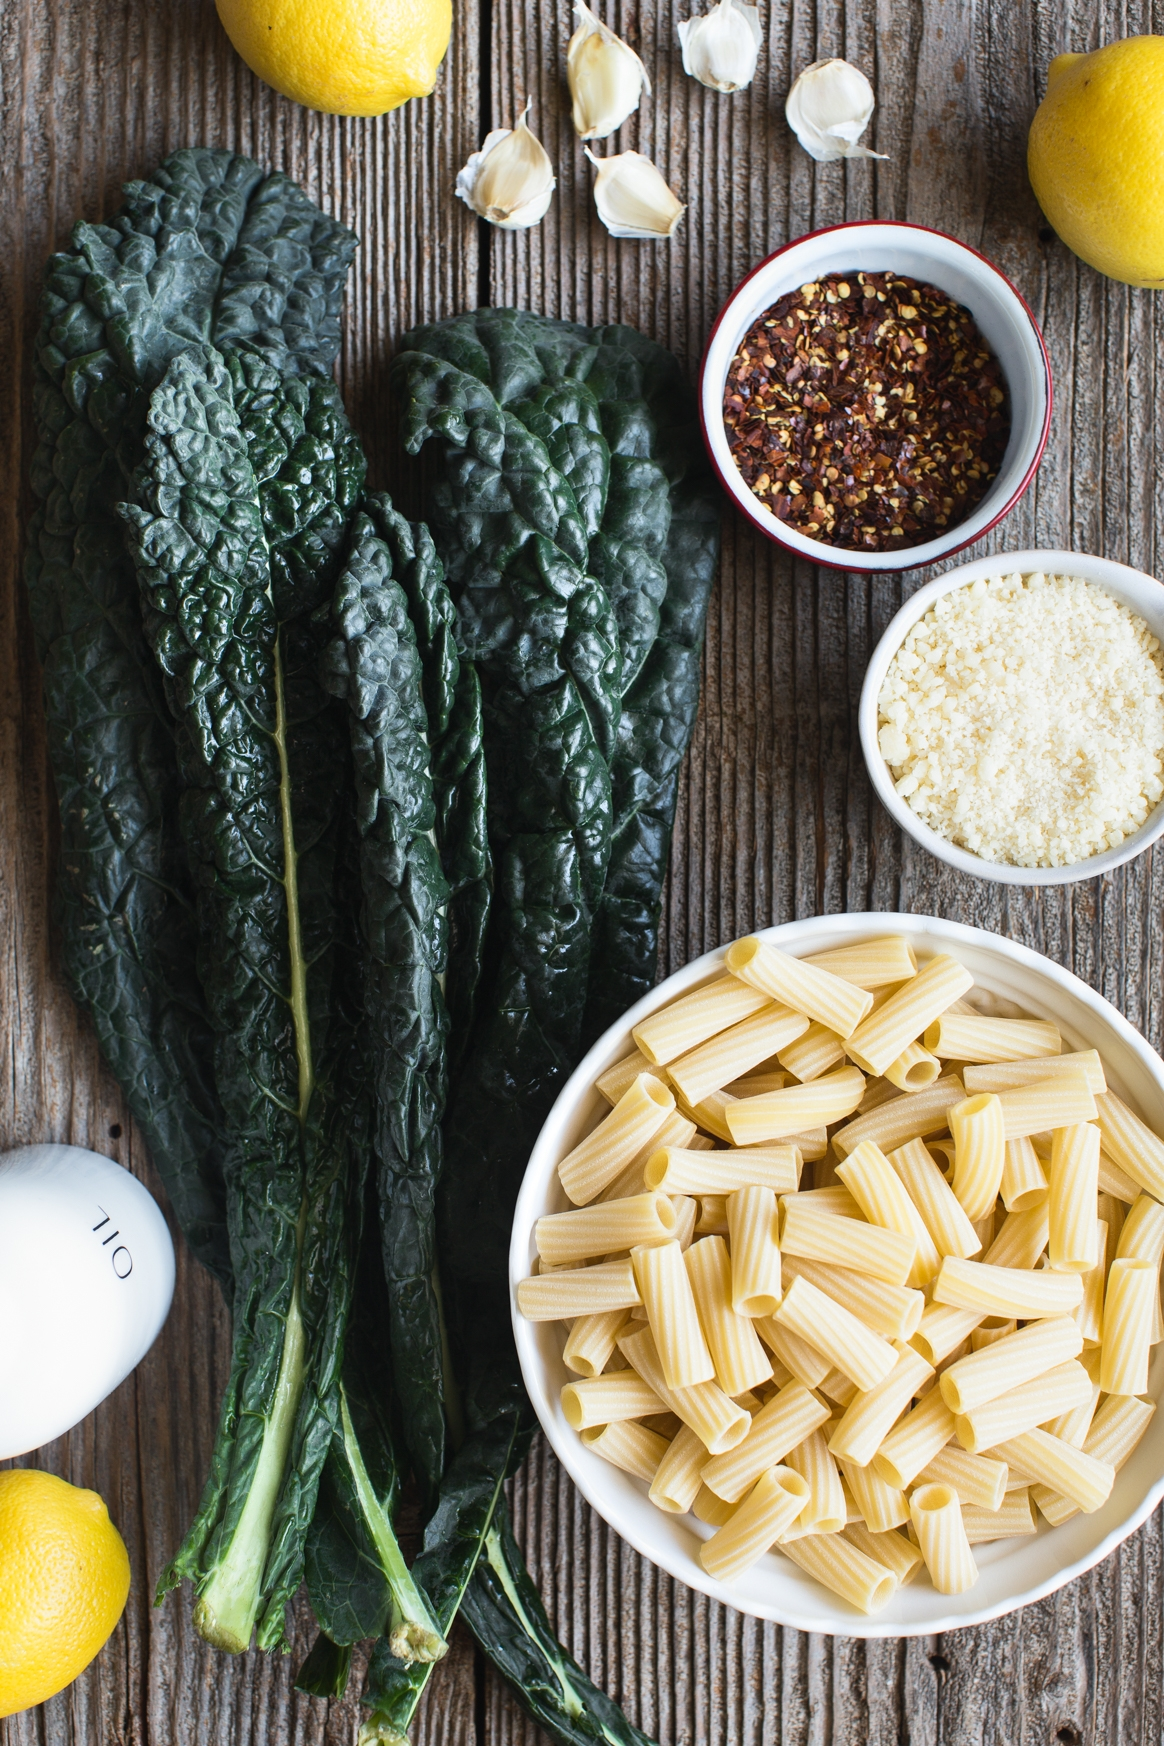 Rigatoni with Easy Kale Sauce Ingredients